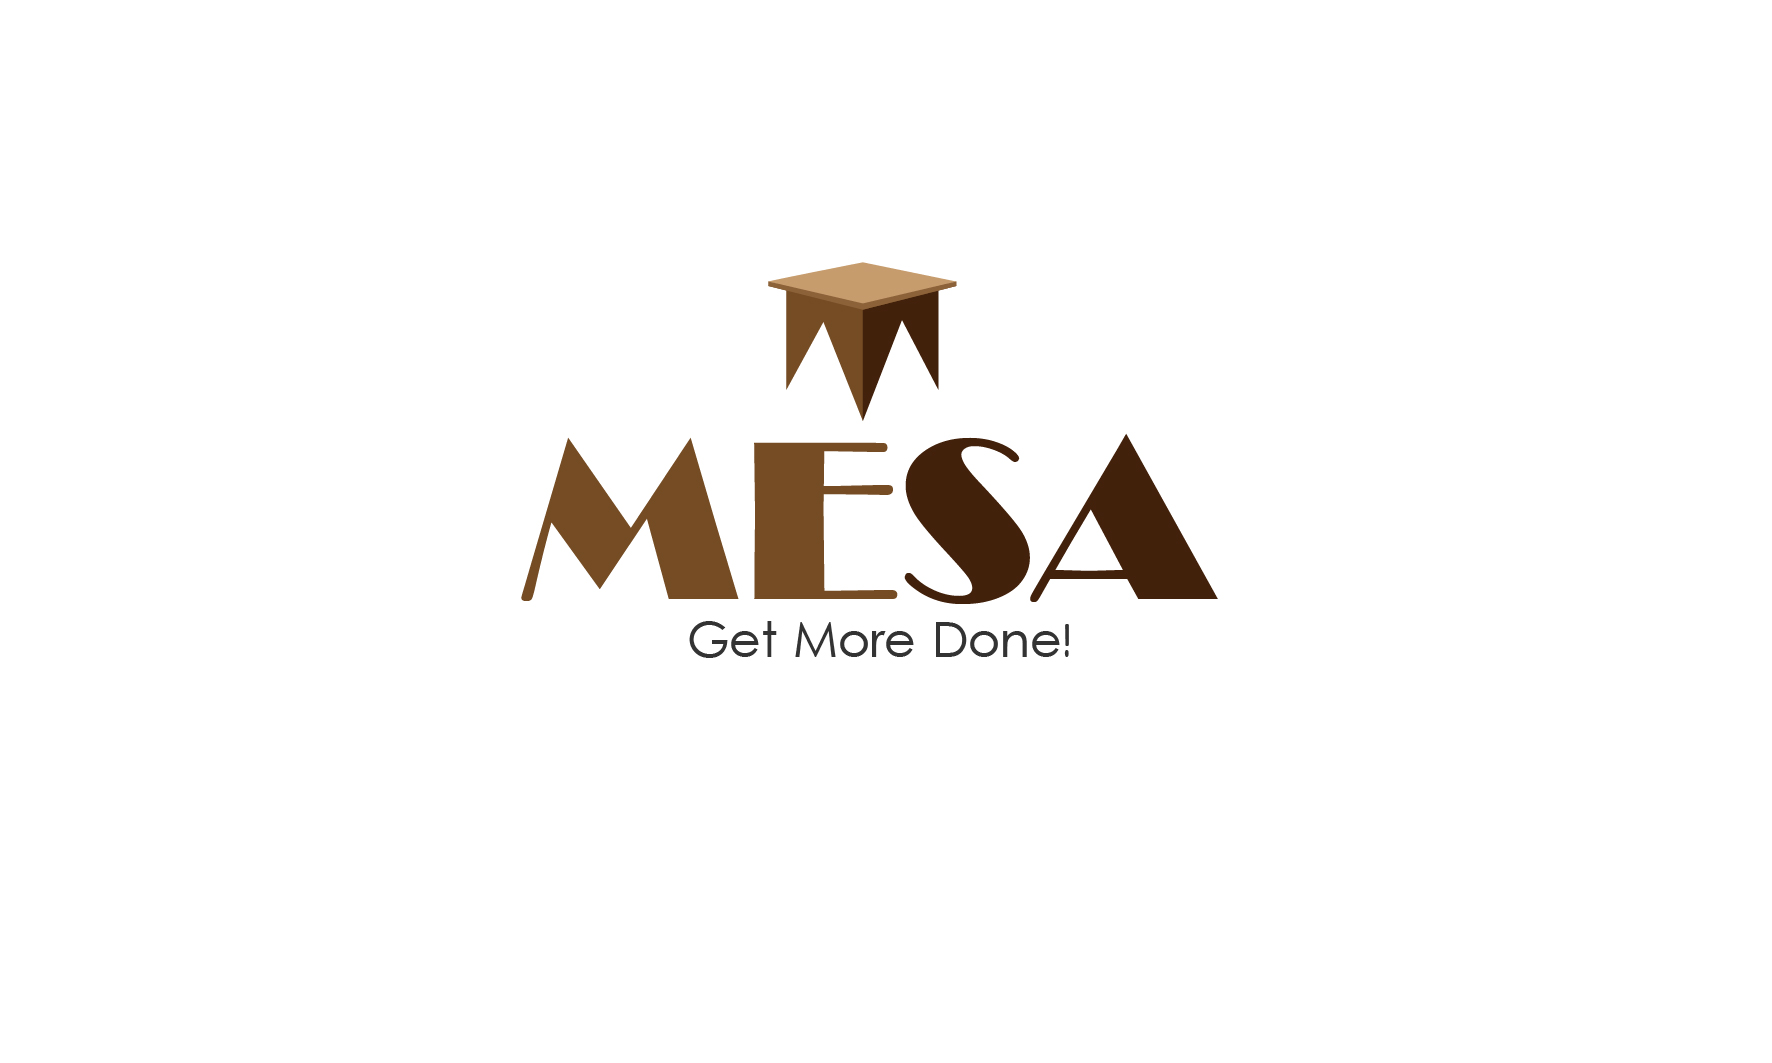 Logo Design by 3draw - Entry No. 163 in the Logo Design Contest Logo Design for Mesa.